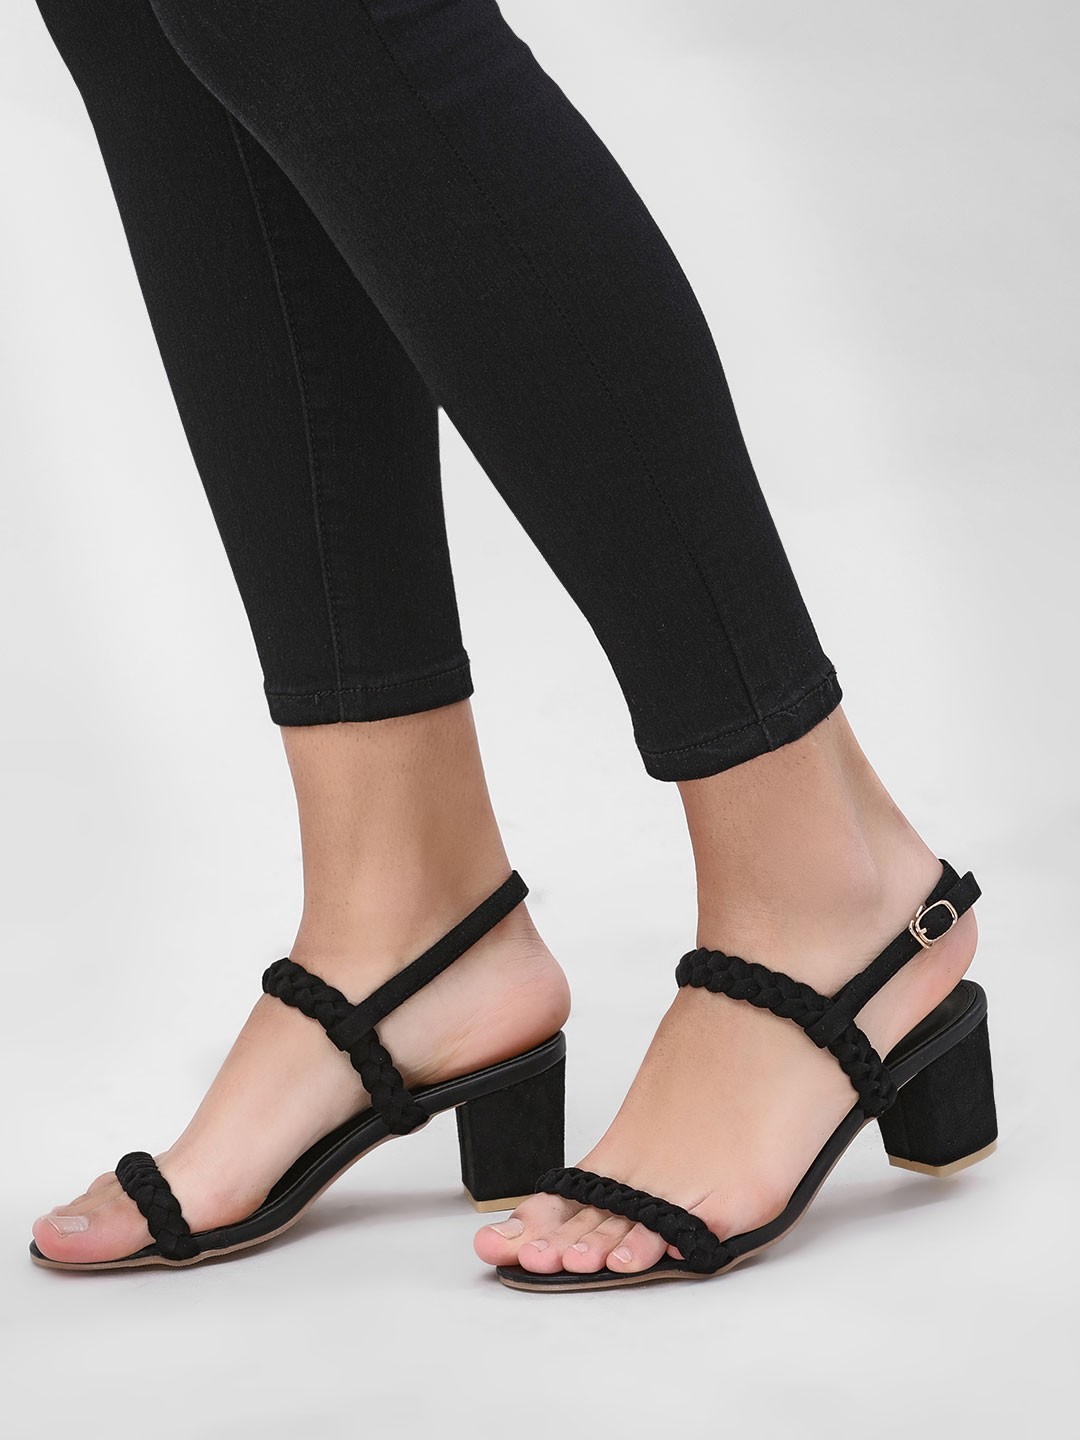 My Foot Couture Black Braided Heeled Sandals 1